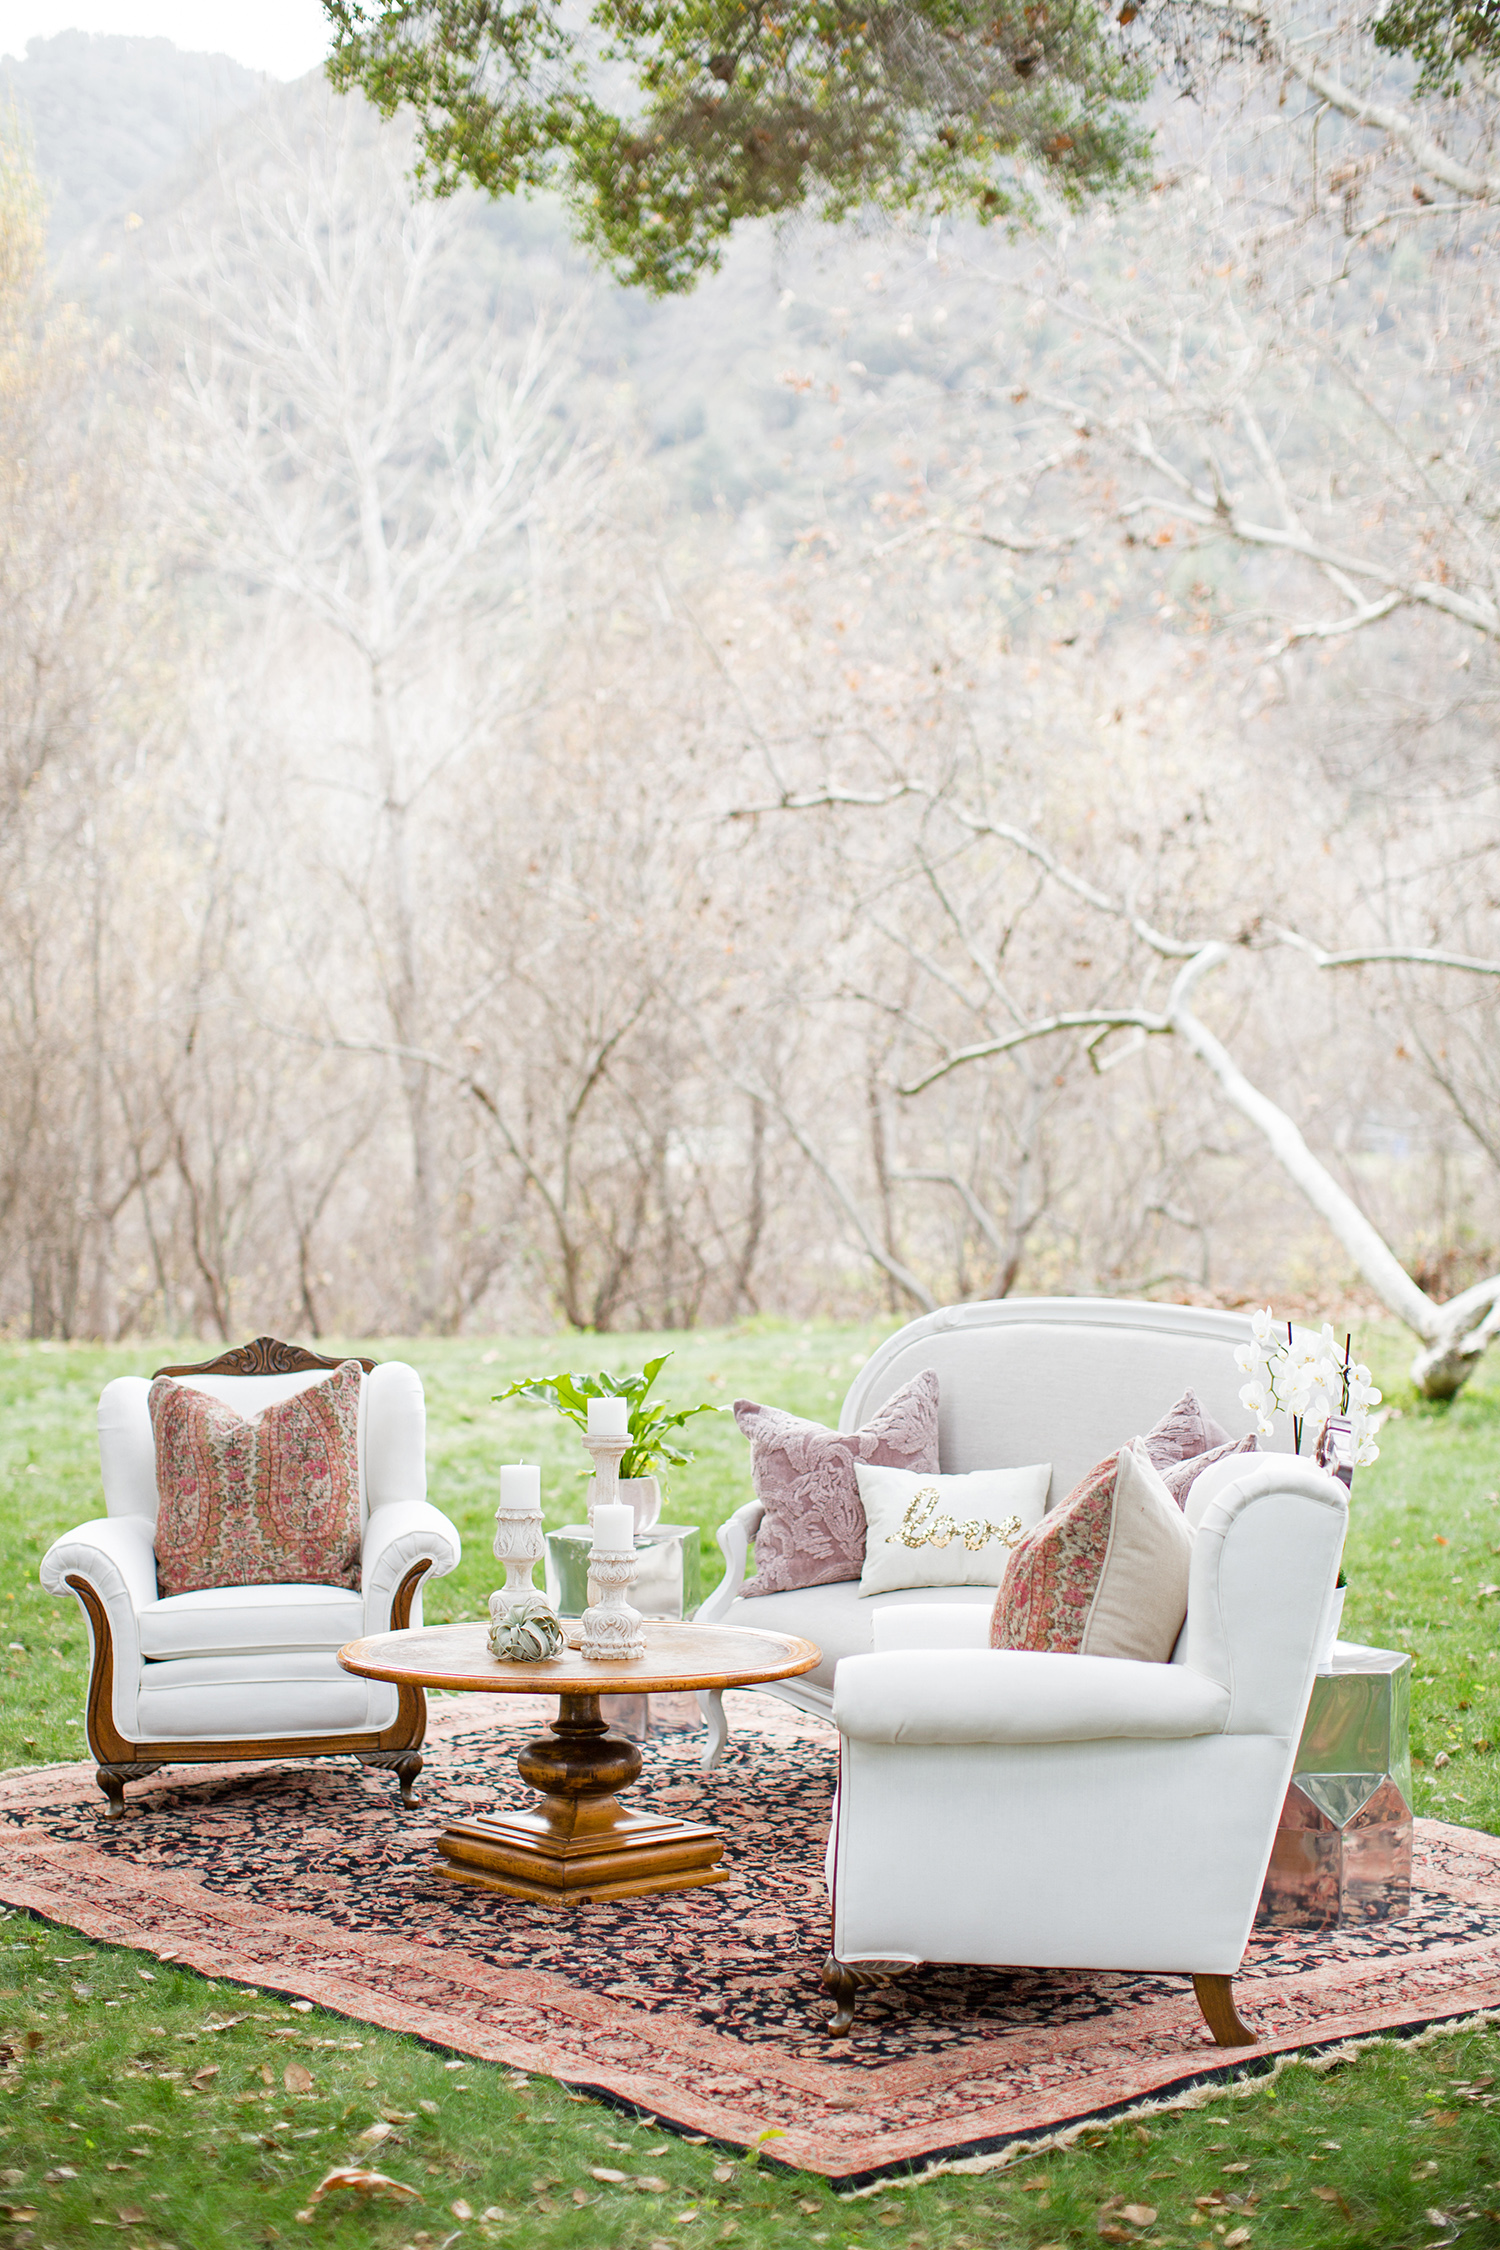 wedding lounge white chairs with bohemian accents in forest